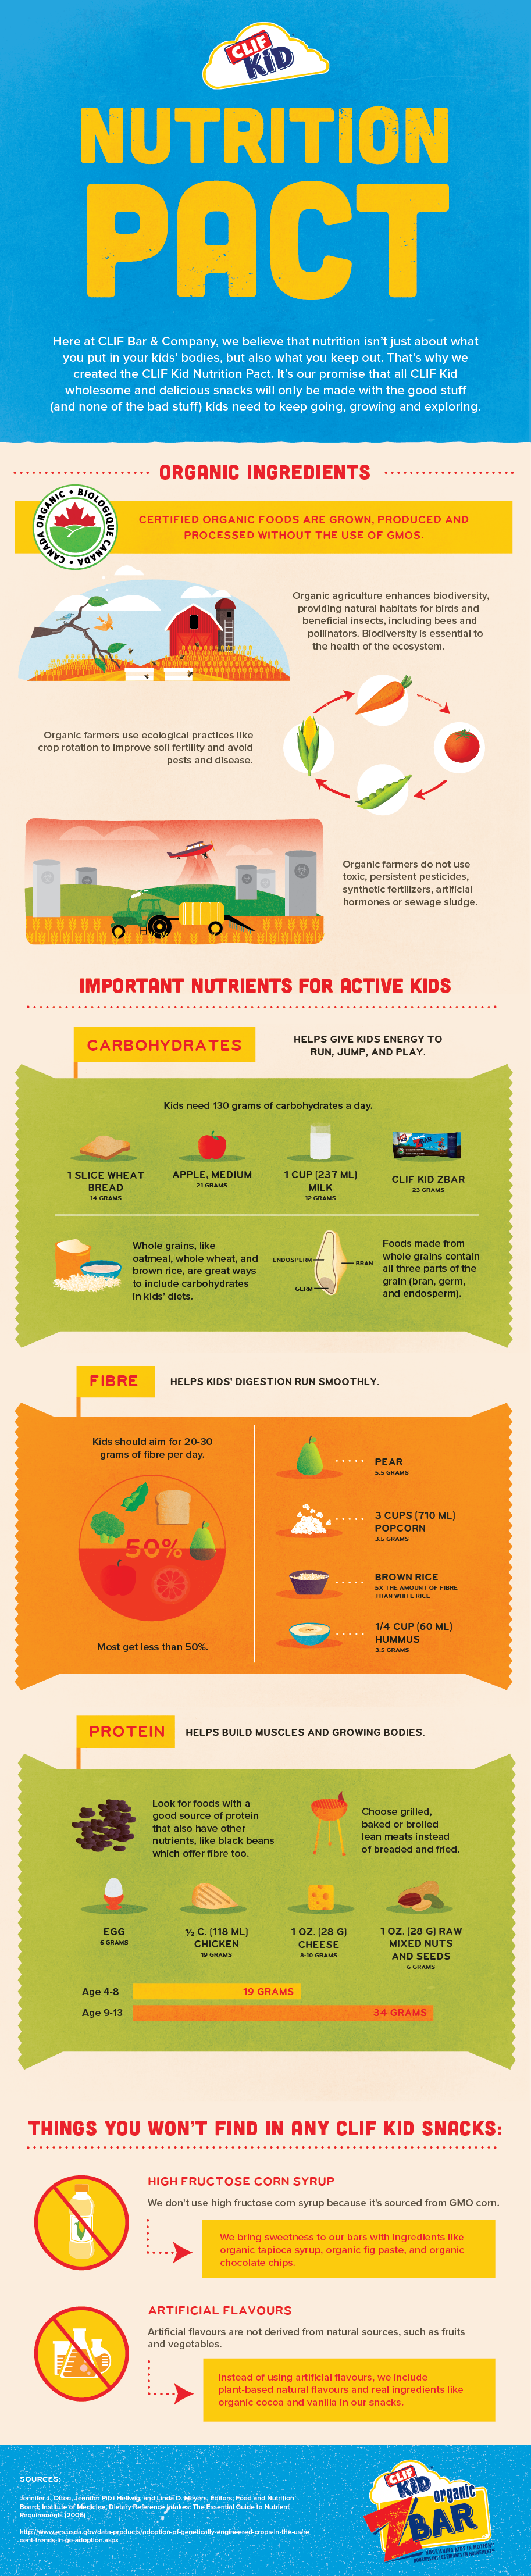 CLIF Kid Nutrition Pact Infographic